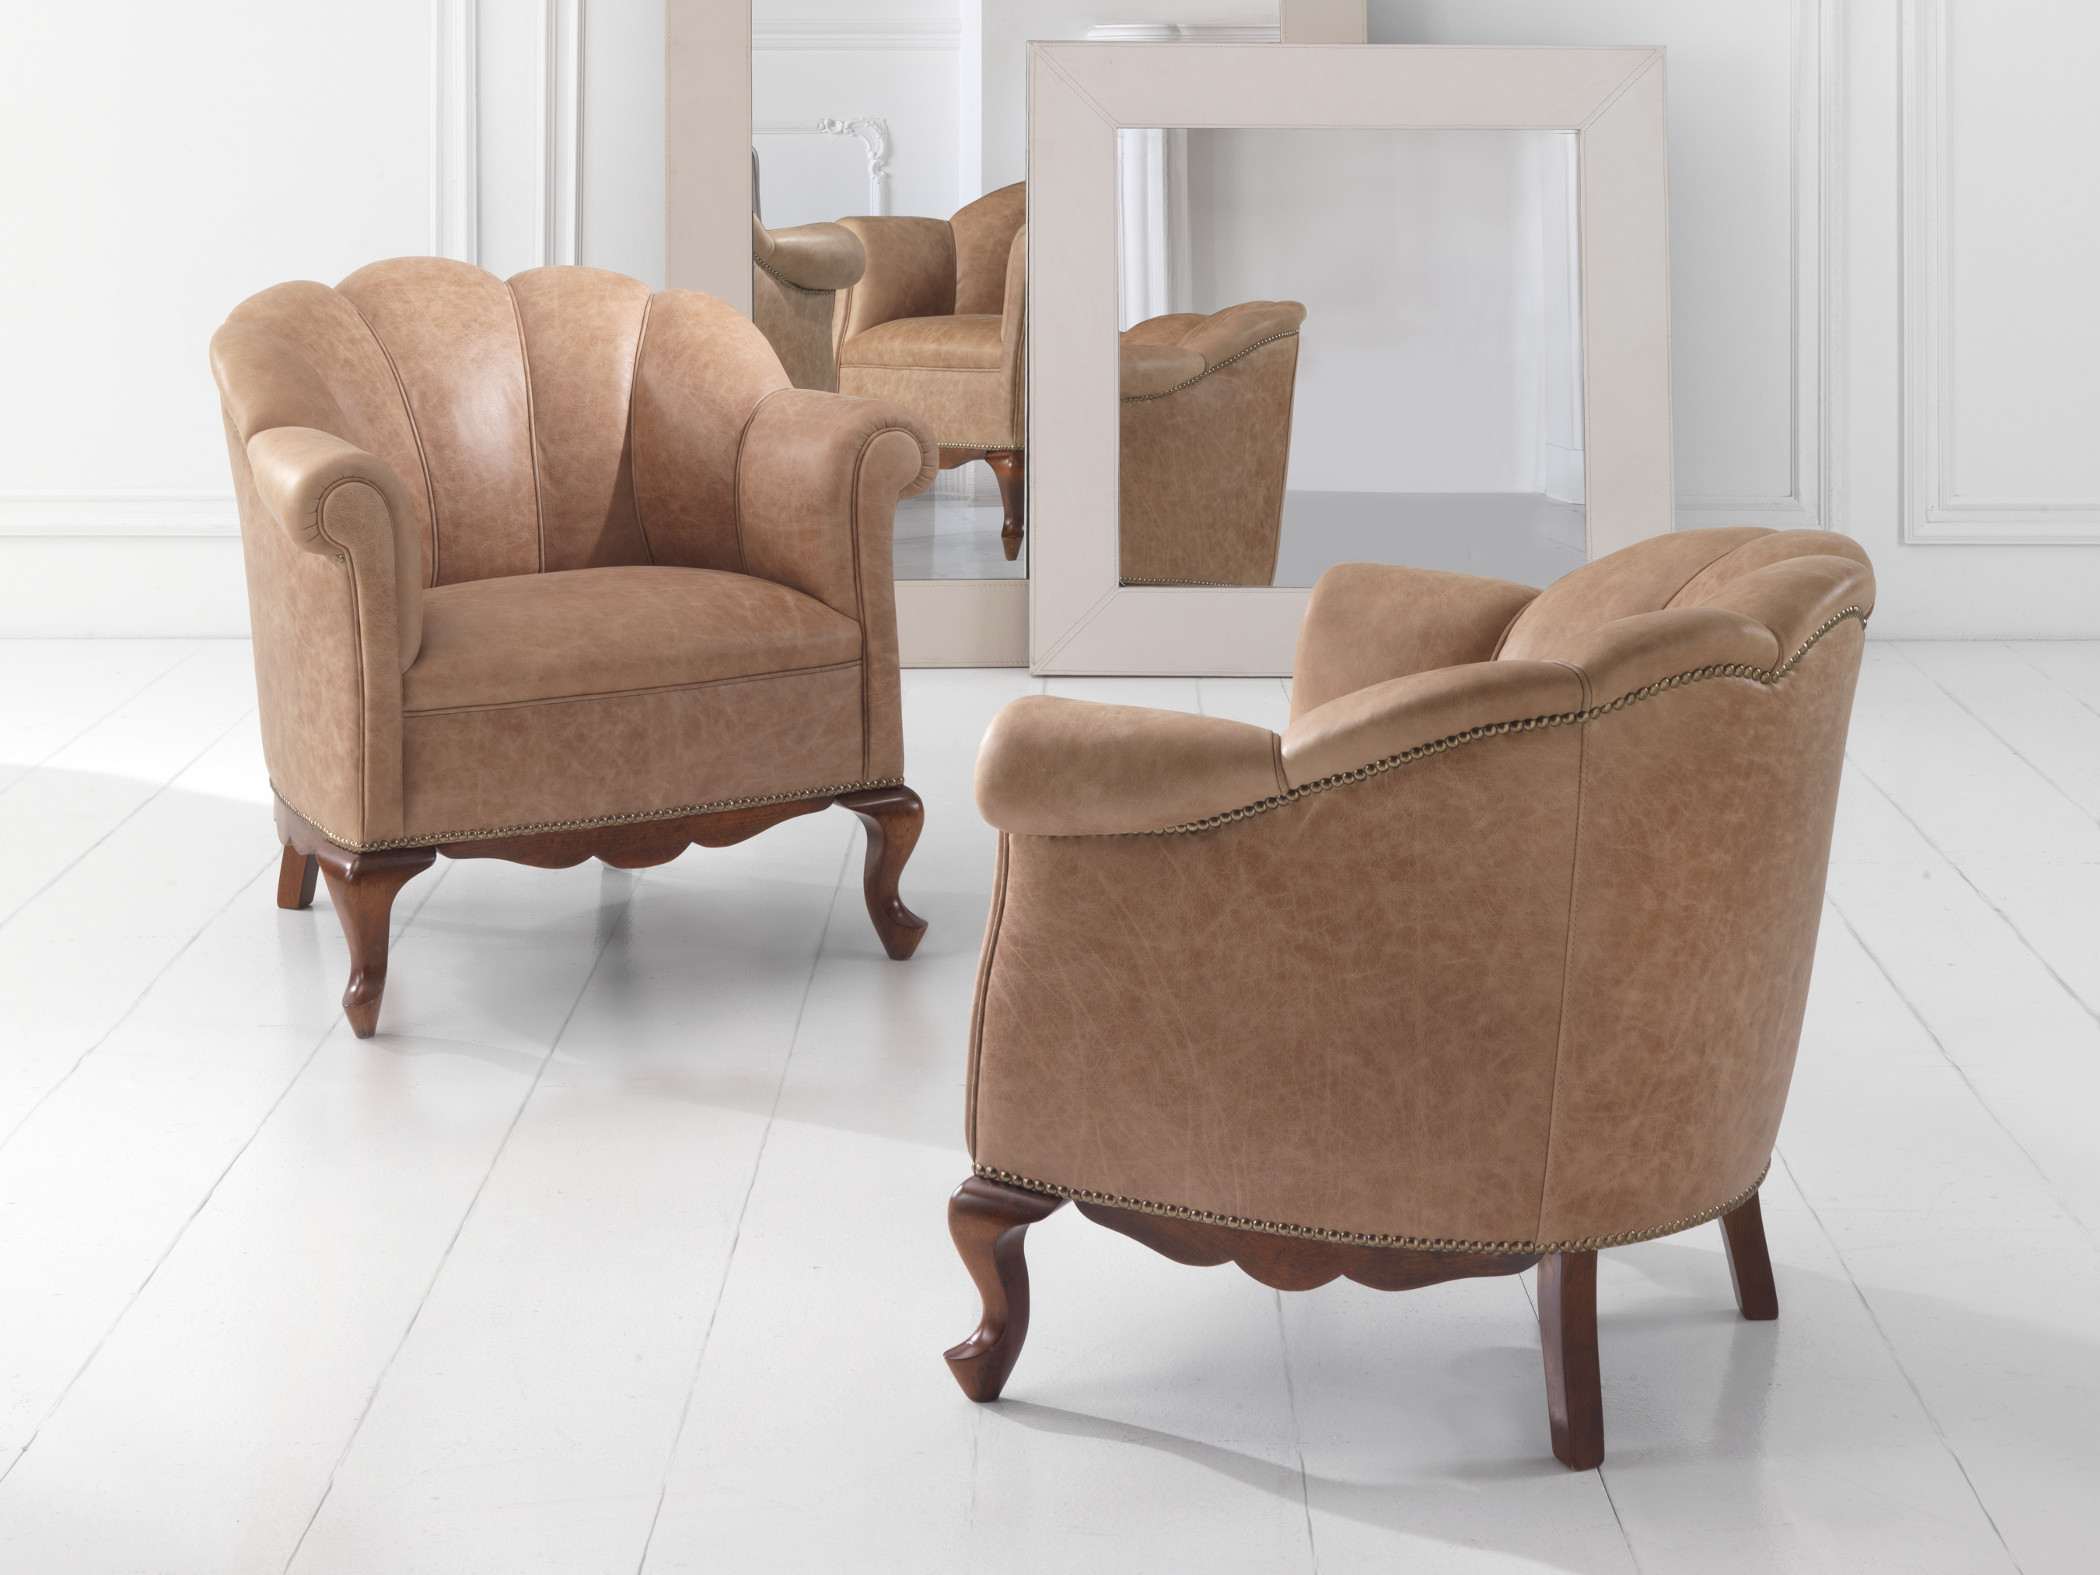 Poltrone luxury marelli outlet for Outlet poltrone